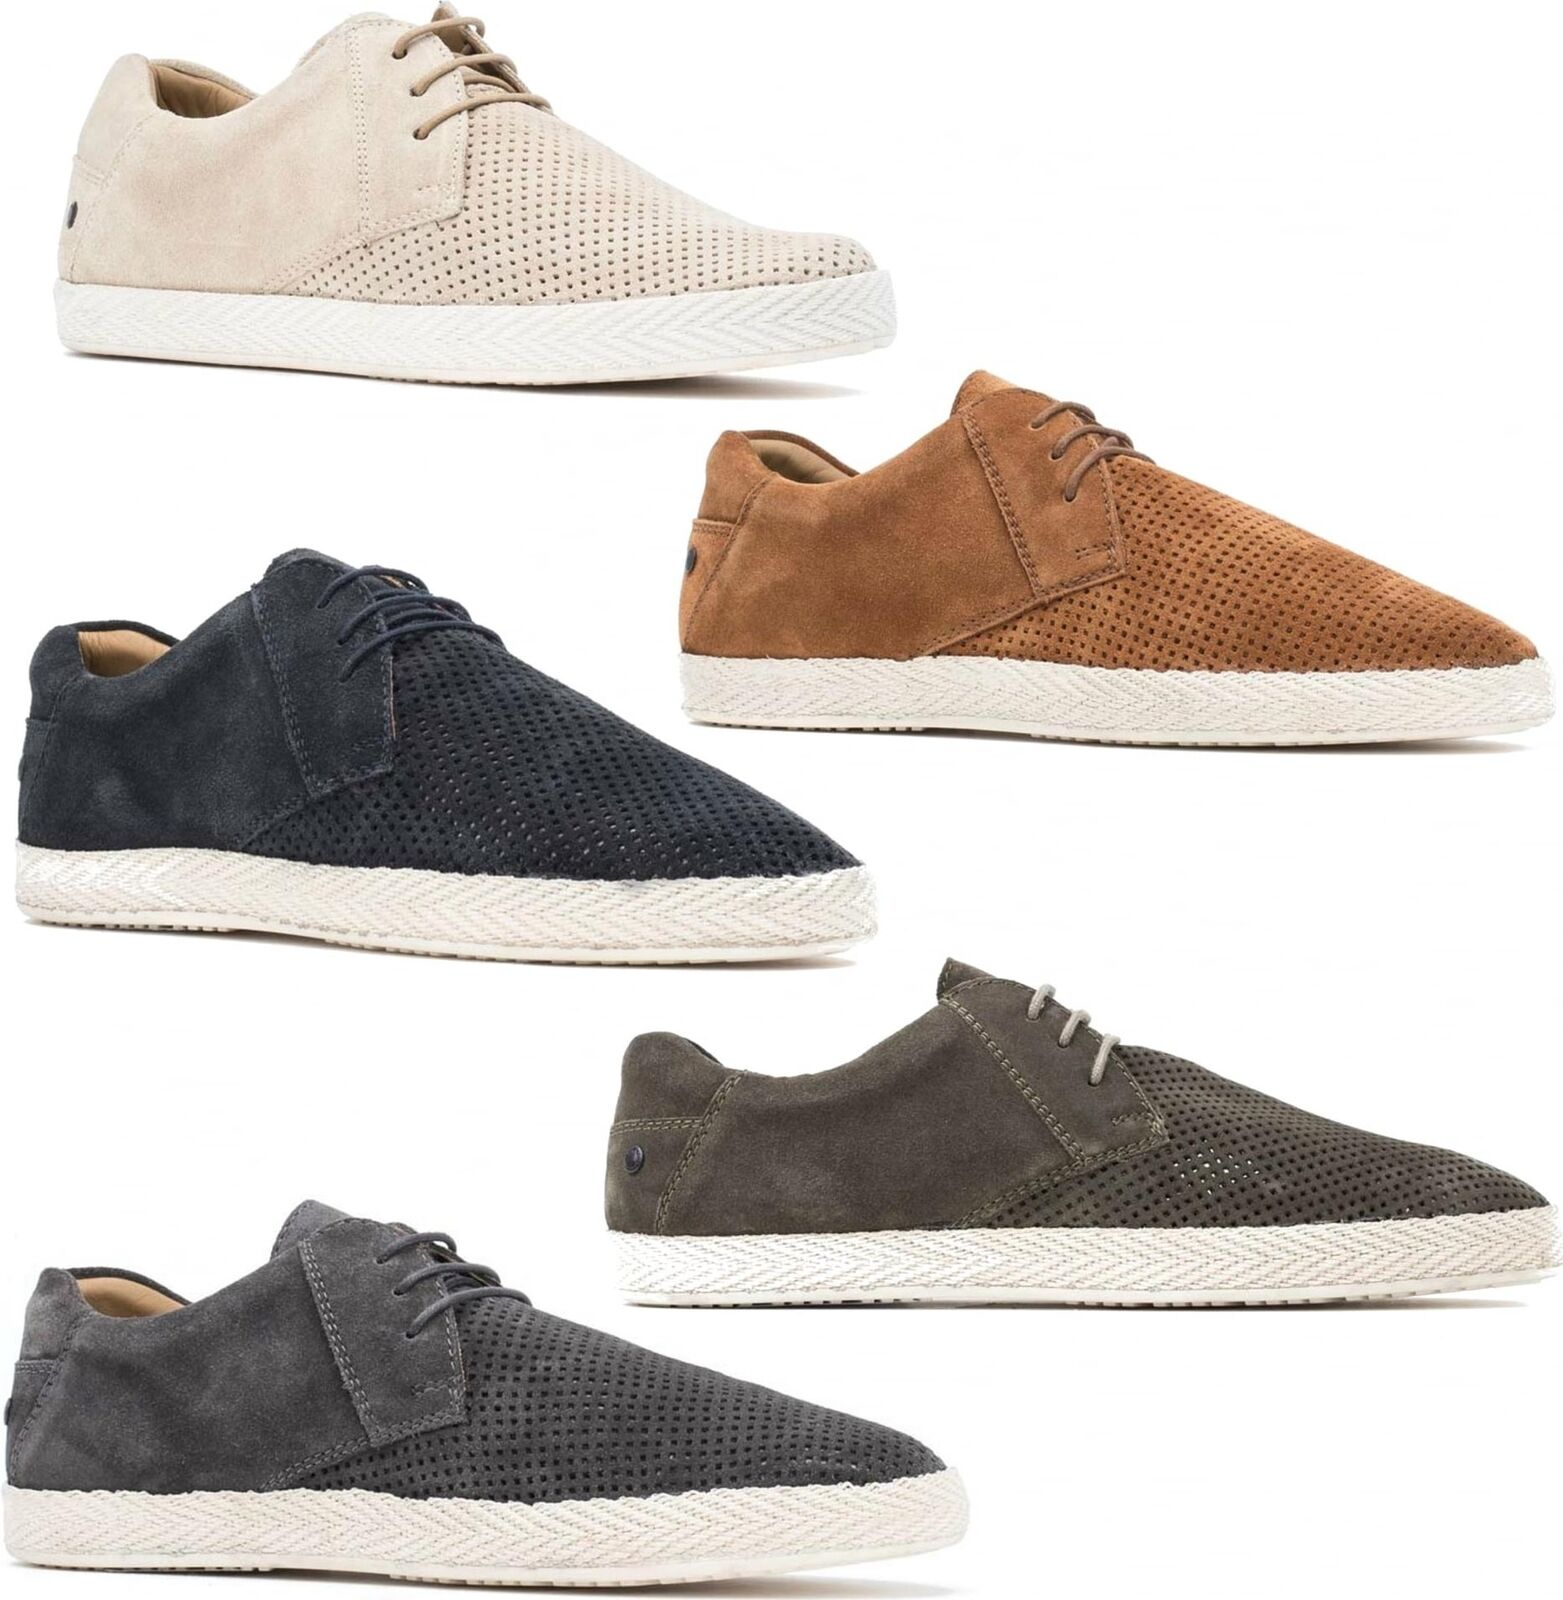 Base London KEEL Mens Suede Leather Casual Laced Trainer Espadrille Retro shoes